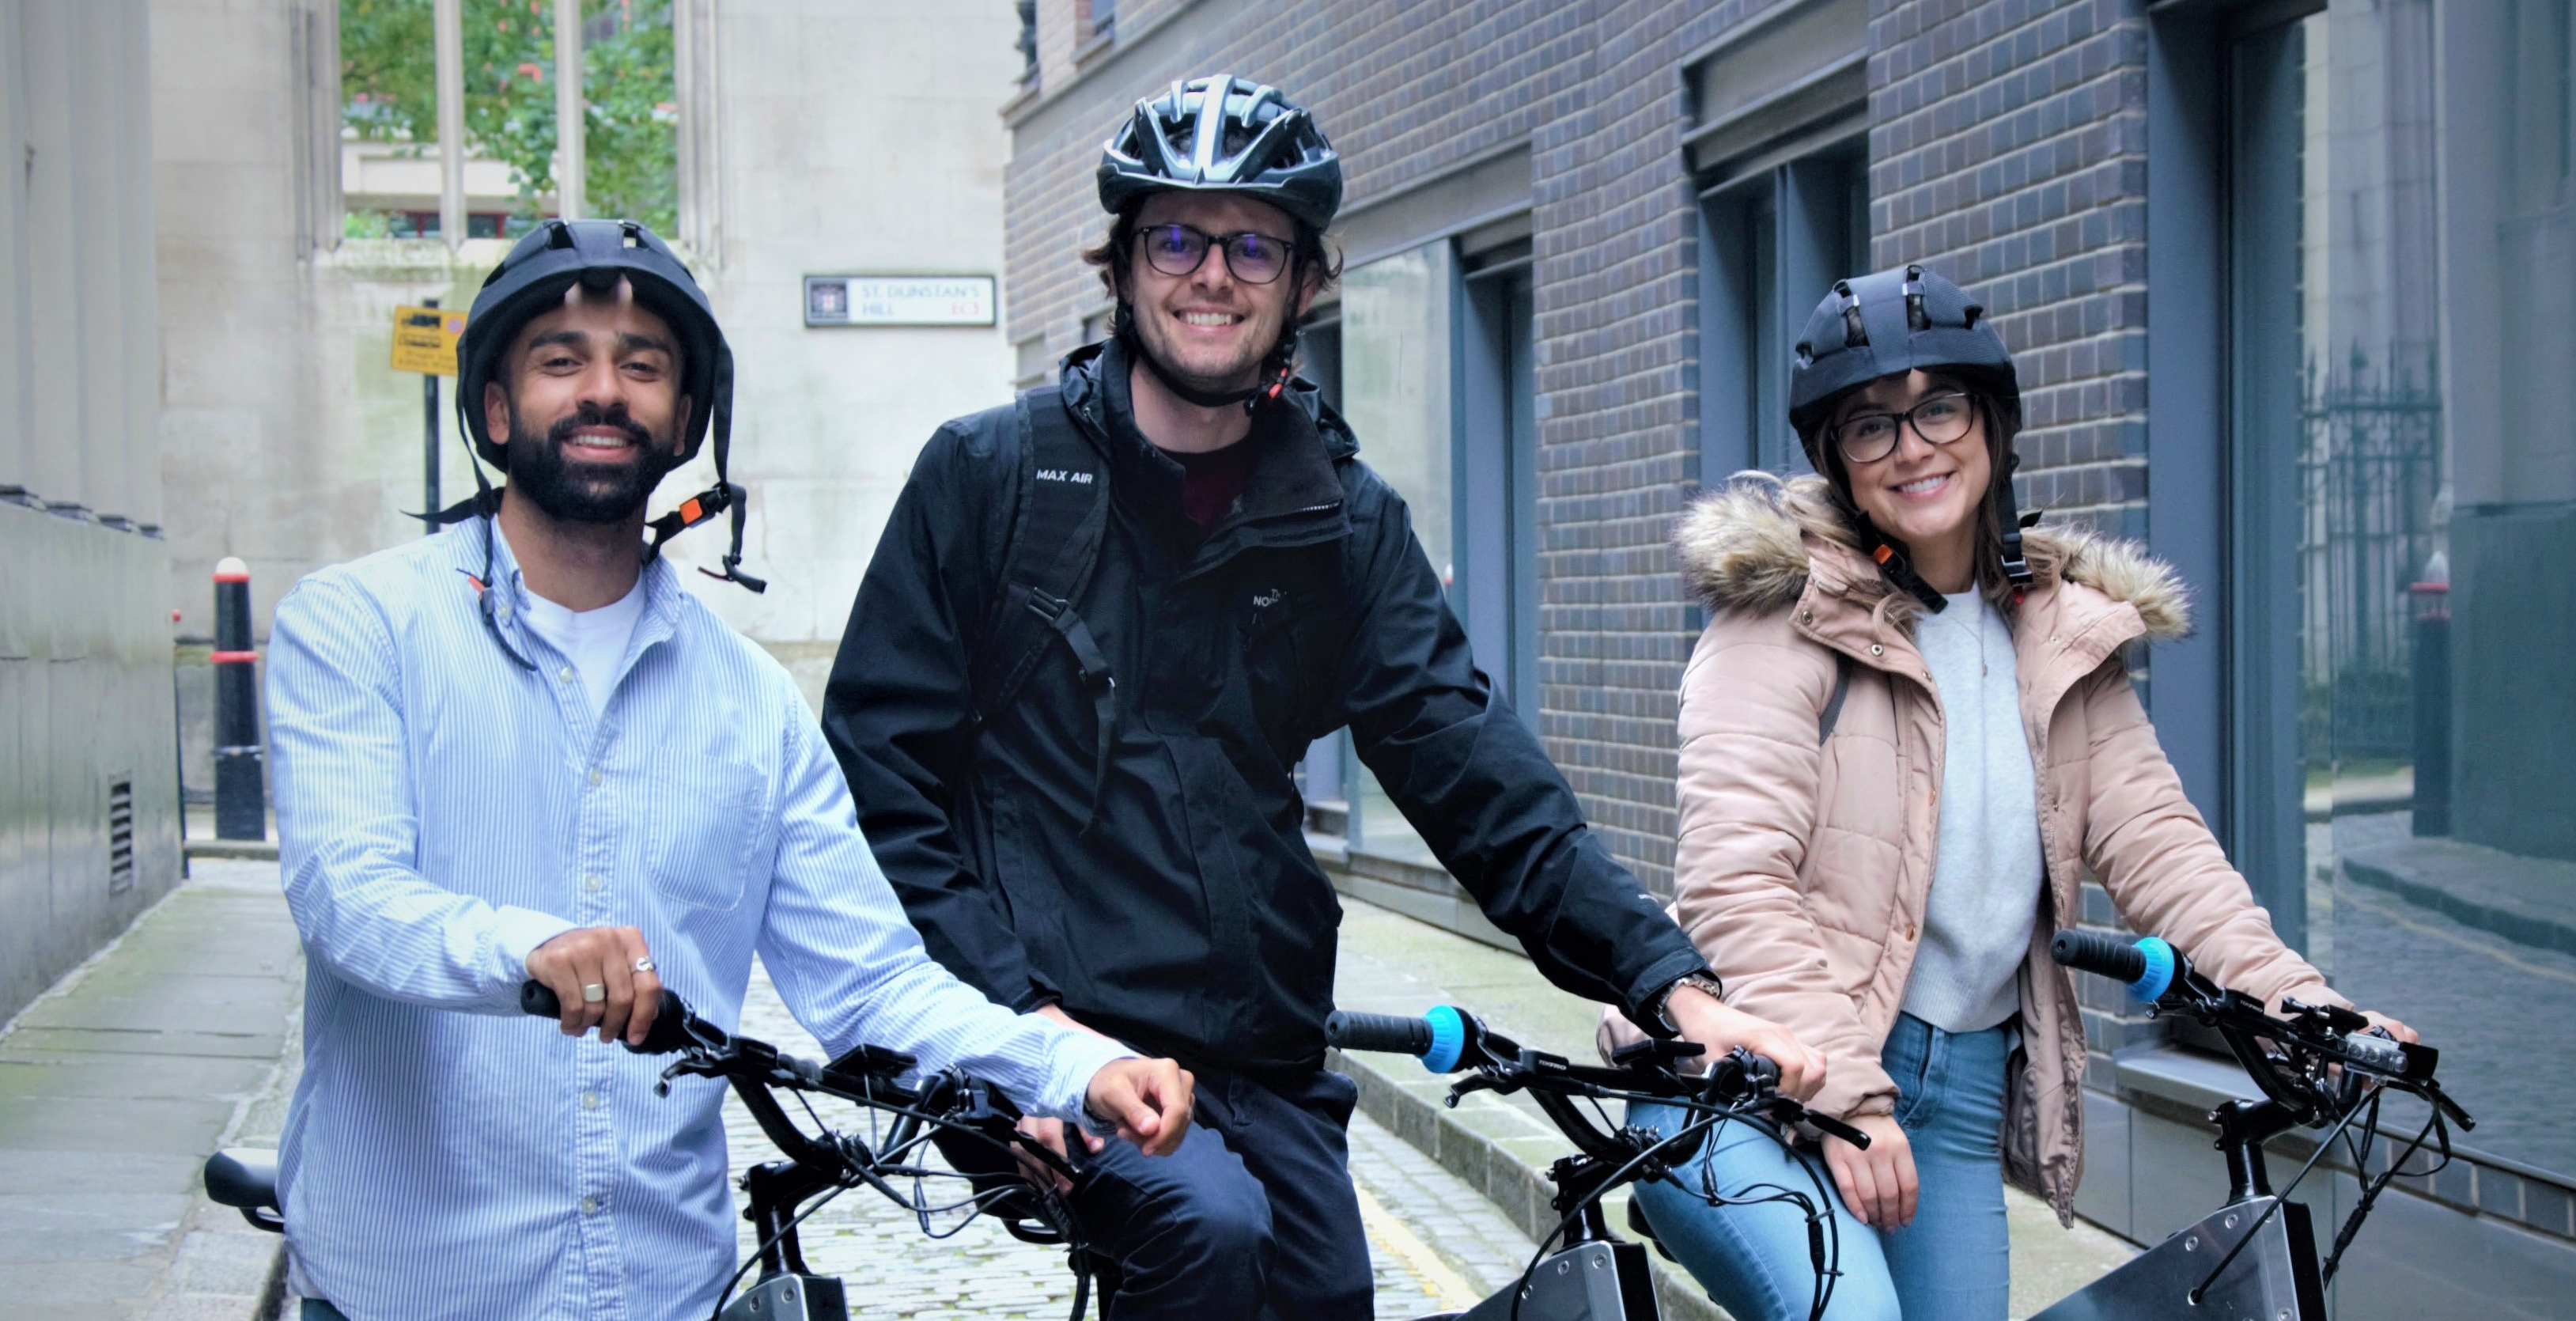 London E-Bike Sightseeing Tour